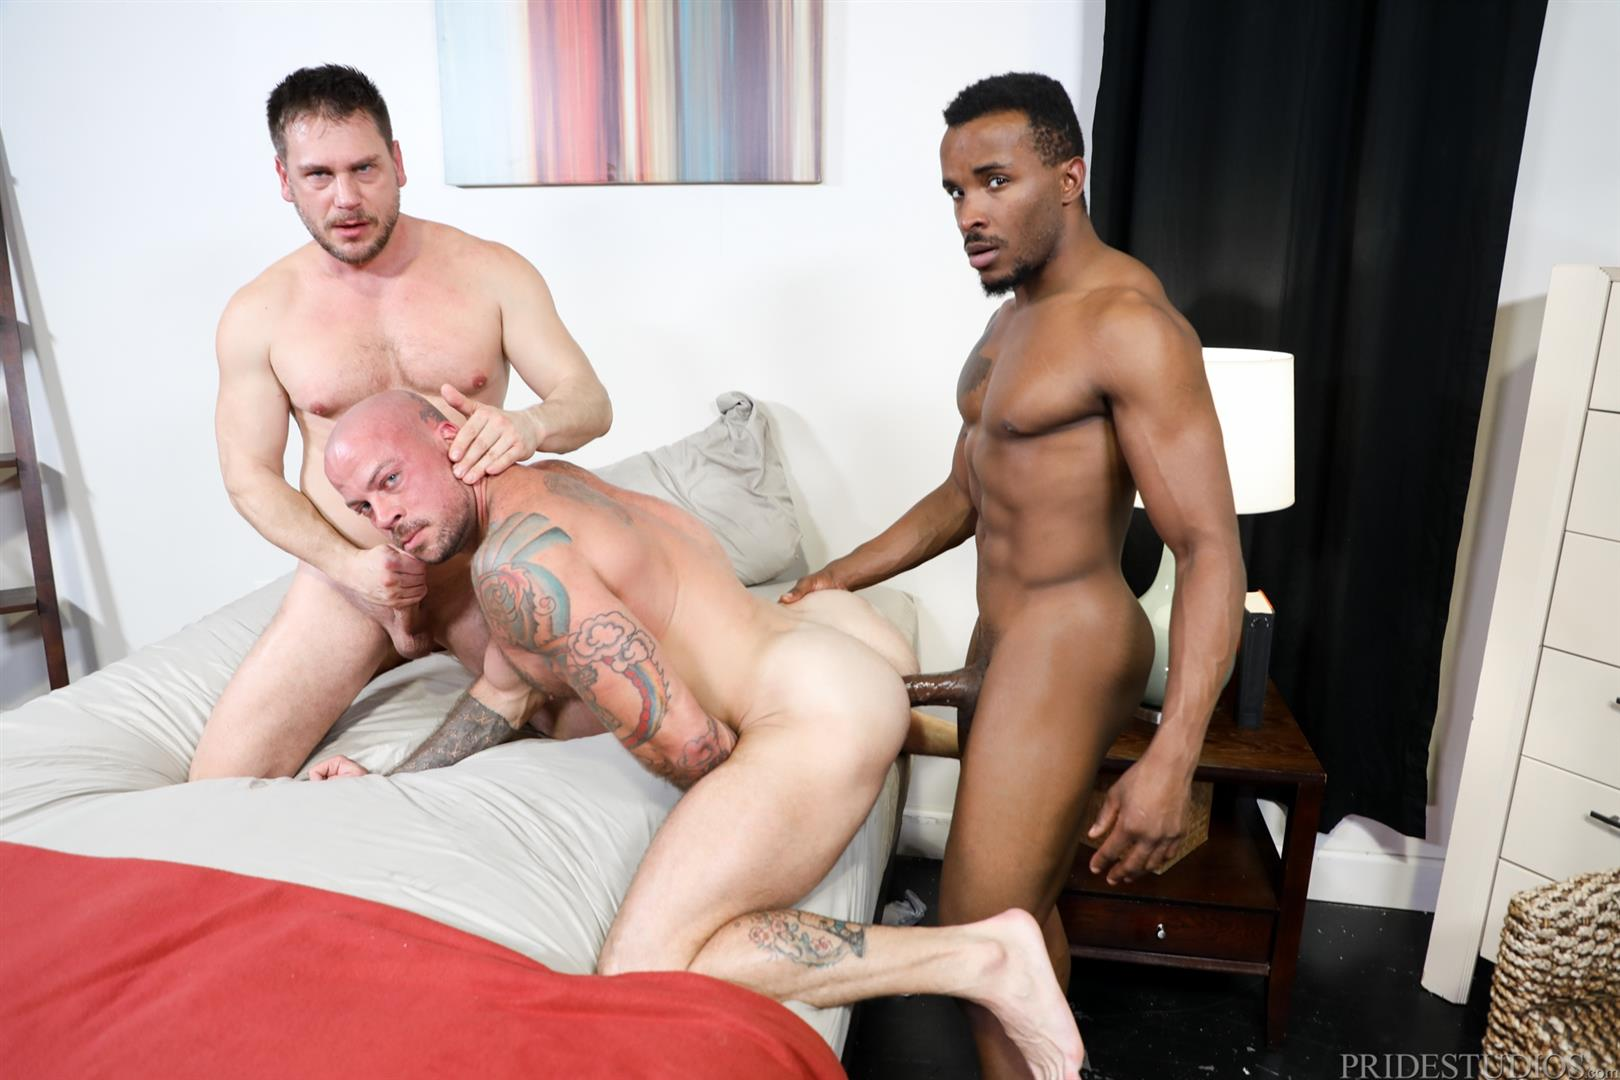 Extra-Big-Dicks-Sean-Duran-and-Hans-Berlin-and-Pheonix-Fellington-Interracial-Bareback-14 Muscle Daddies Sean Duran and Hans Berlin Share Pheonix Fellington's Big Black Cock